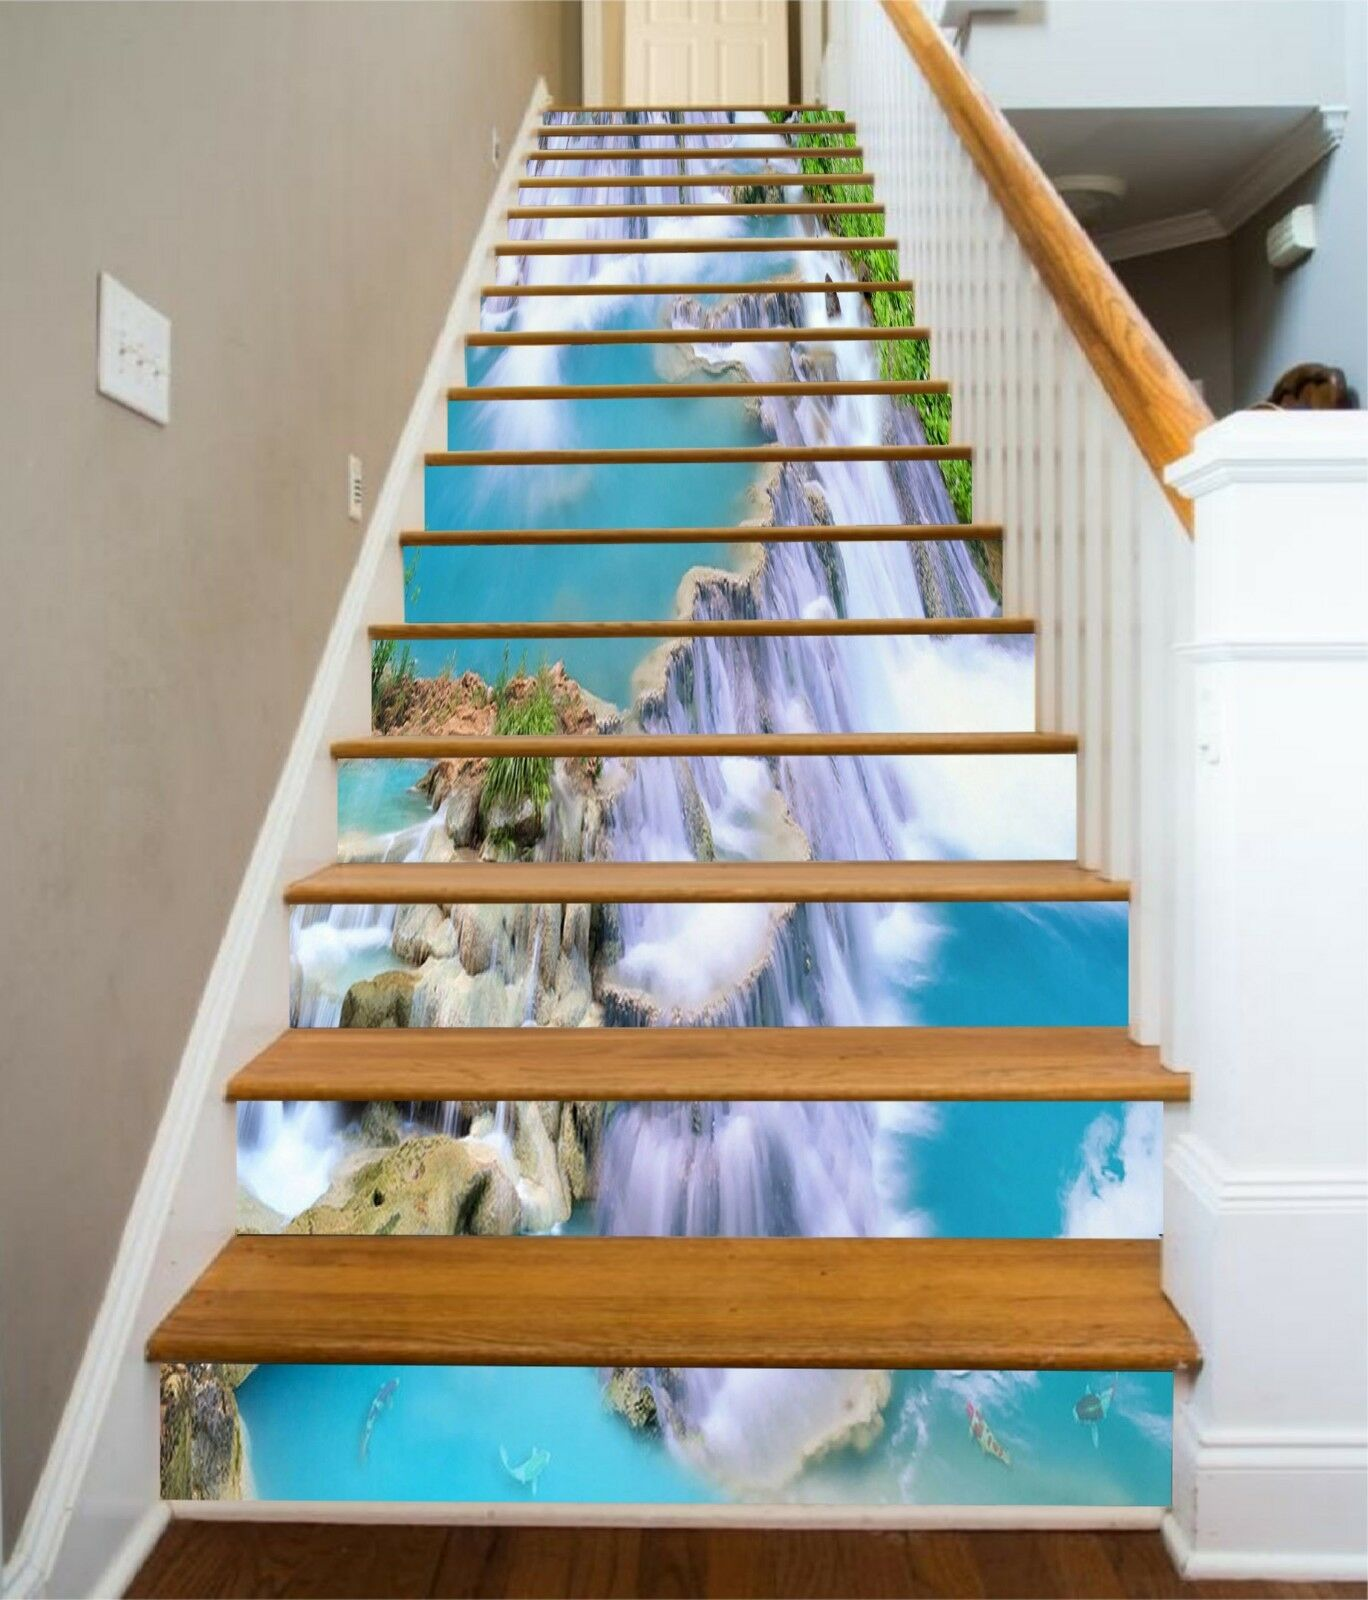 3D Bule Pond Stair Risers Decoration Photo Mural Vinyl Decal Wallpaper CA